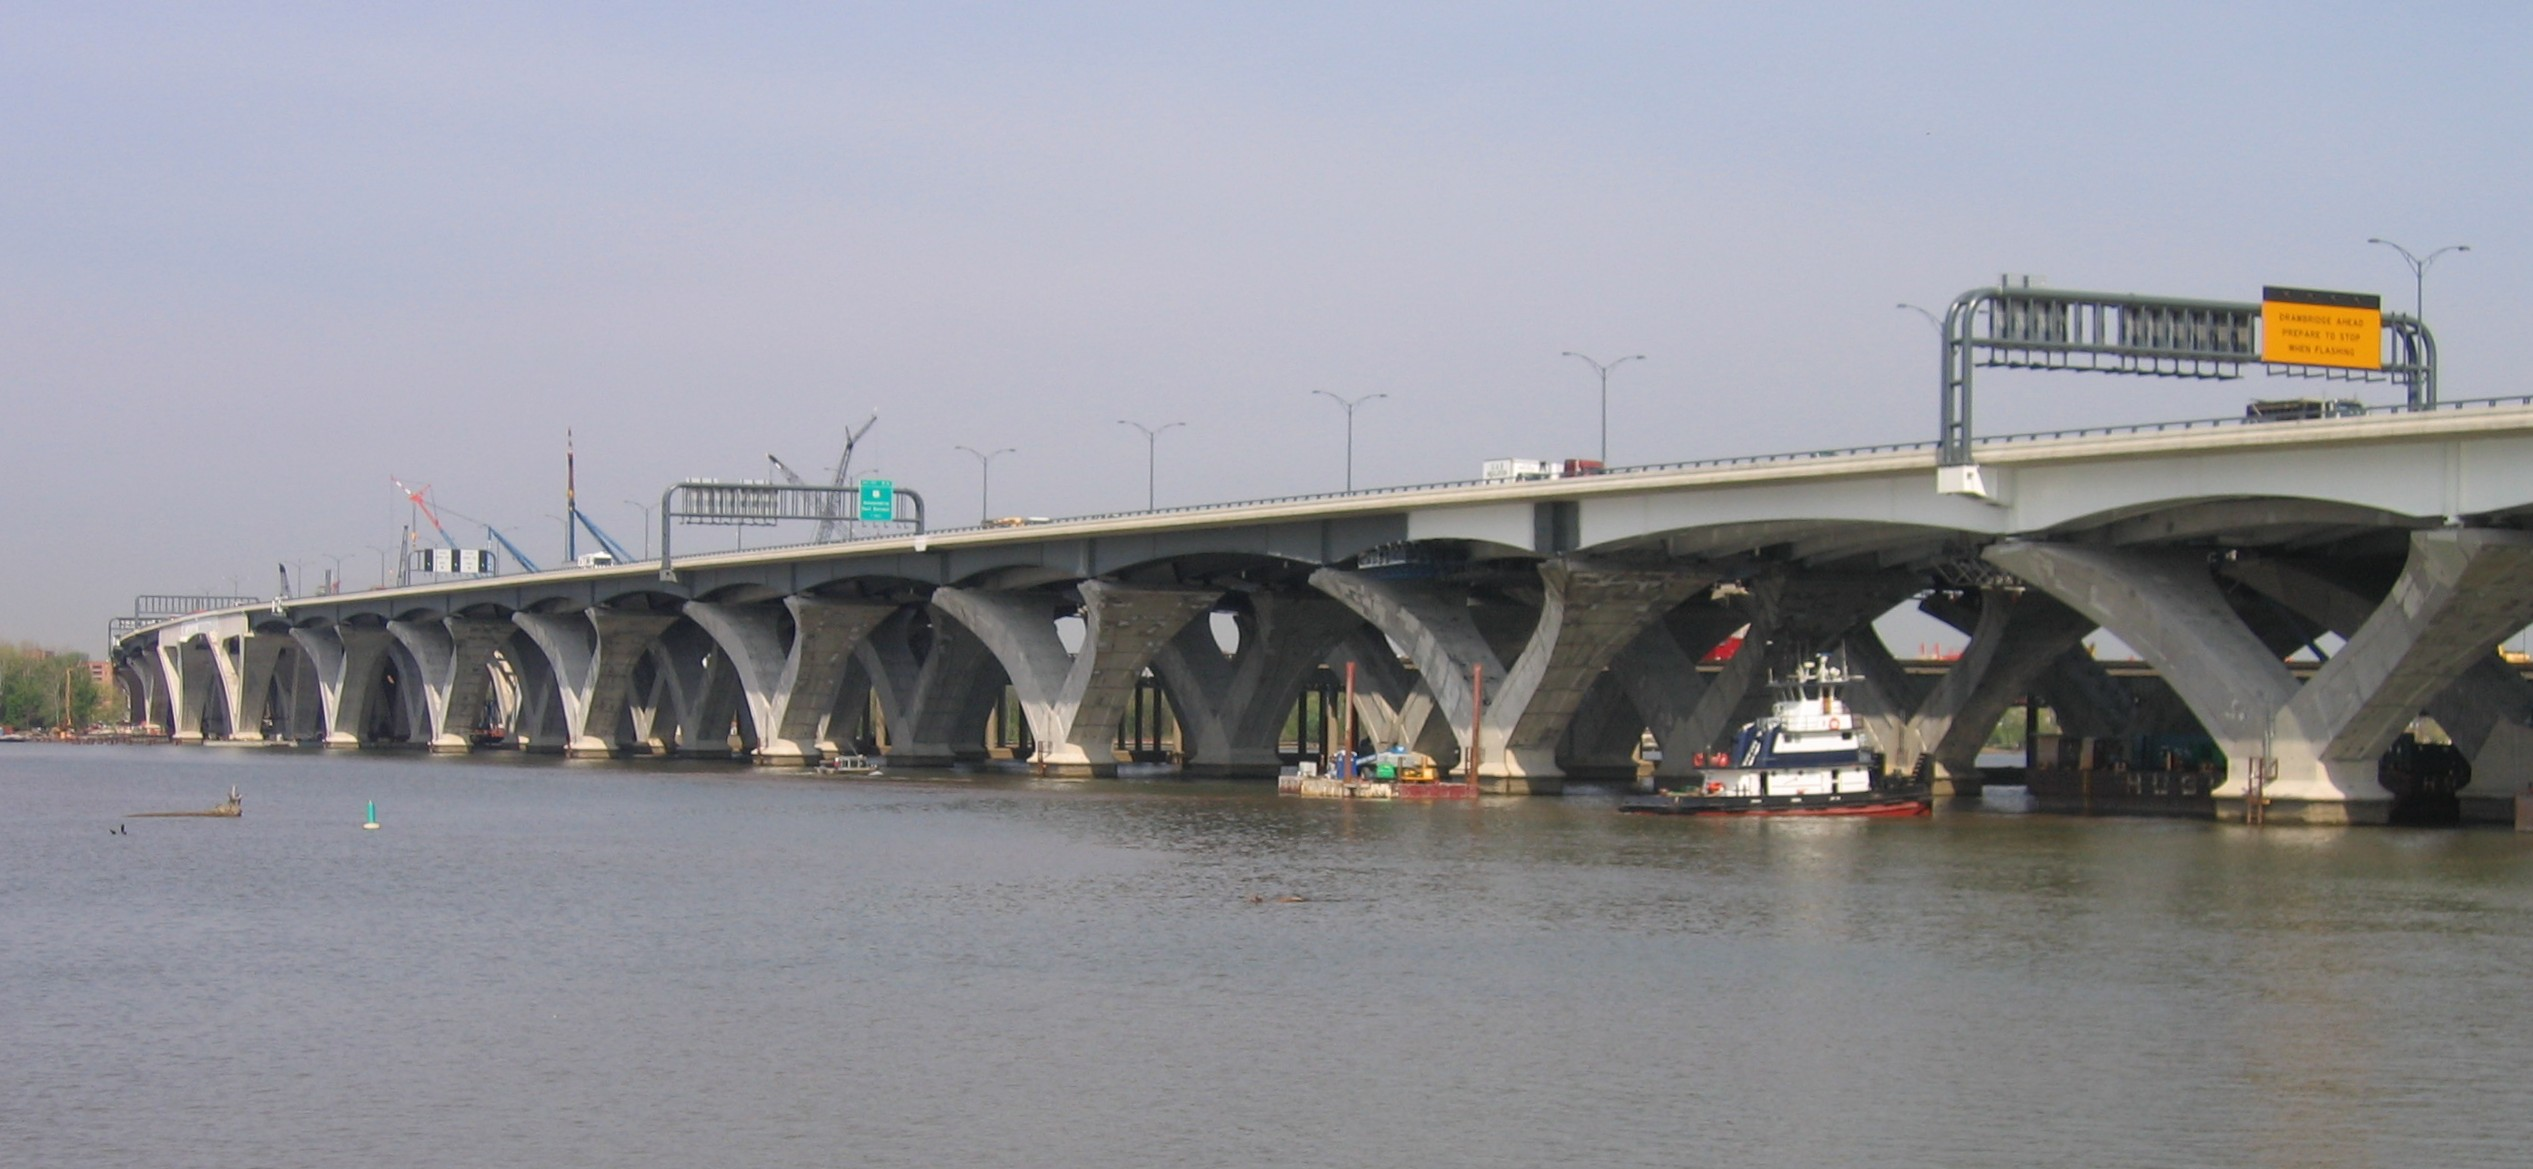 Woodrow Wilson Bridge - Wikipedia